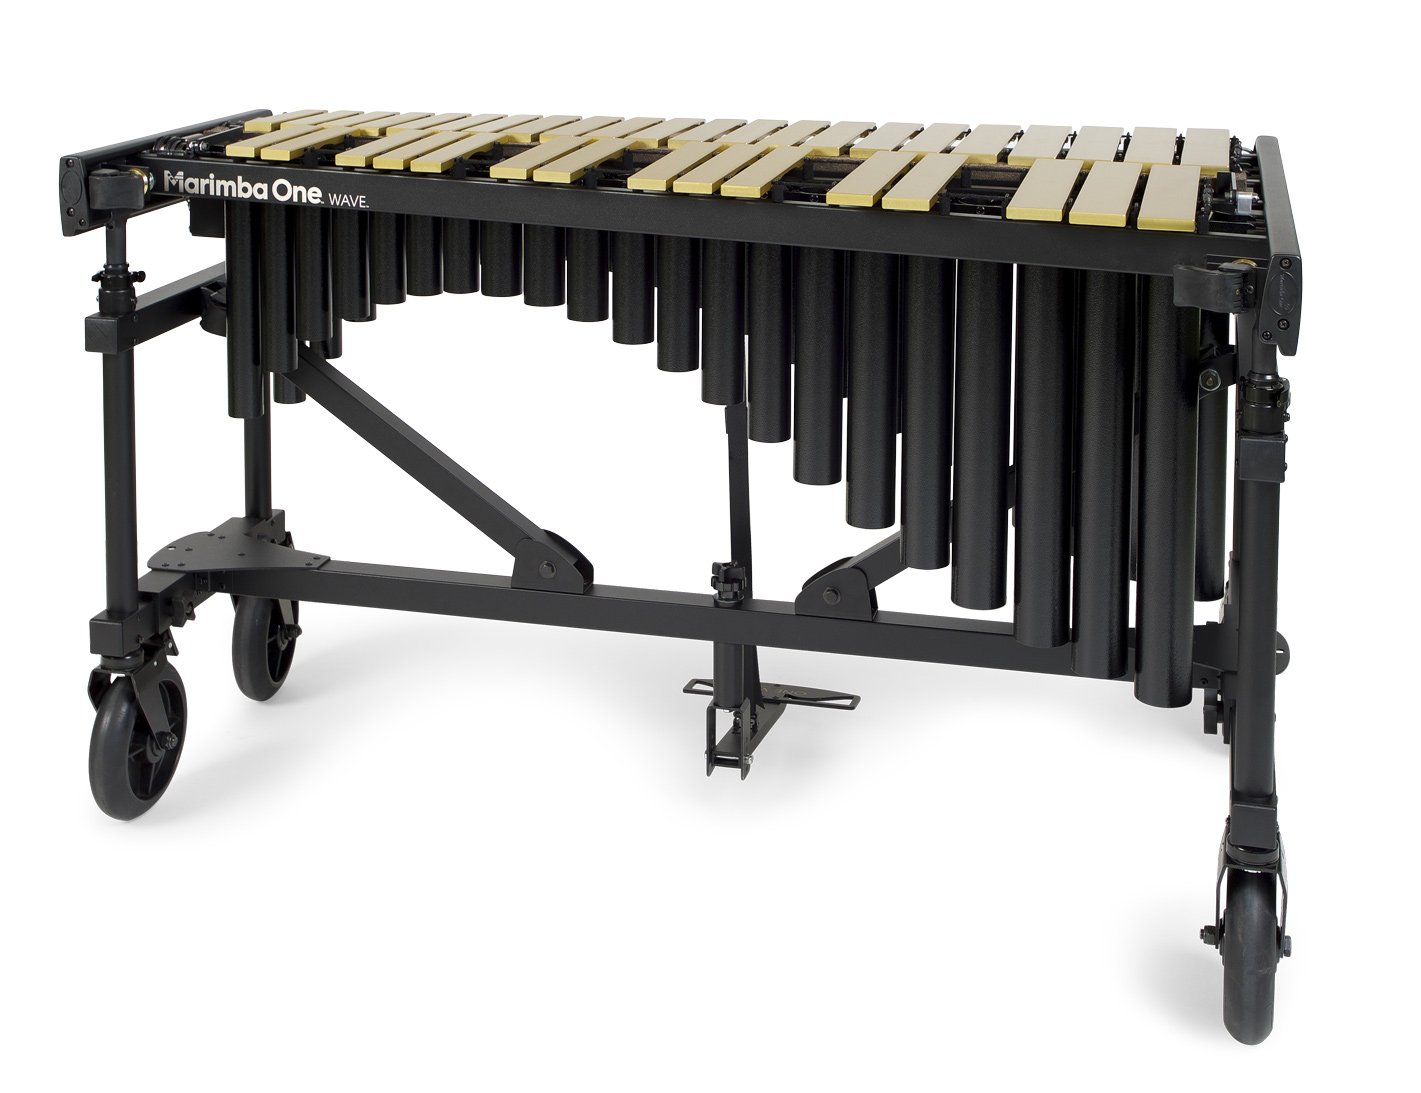 #9032 Marimba One Wave™ 3.0 Octave Vibraphone, Gold without motor 三個八度、金色琴鍵、無震音馬達